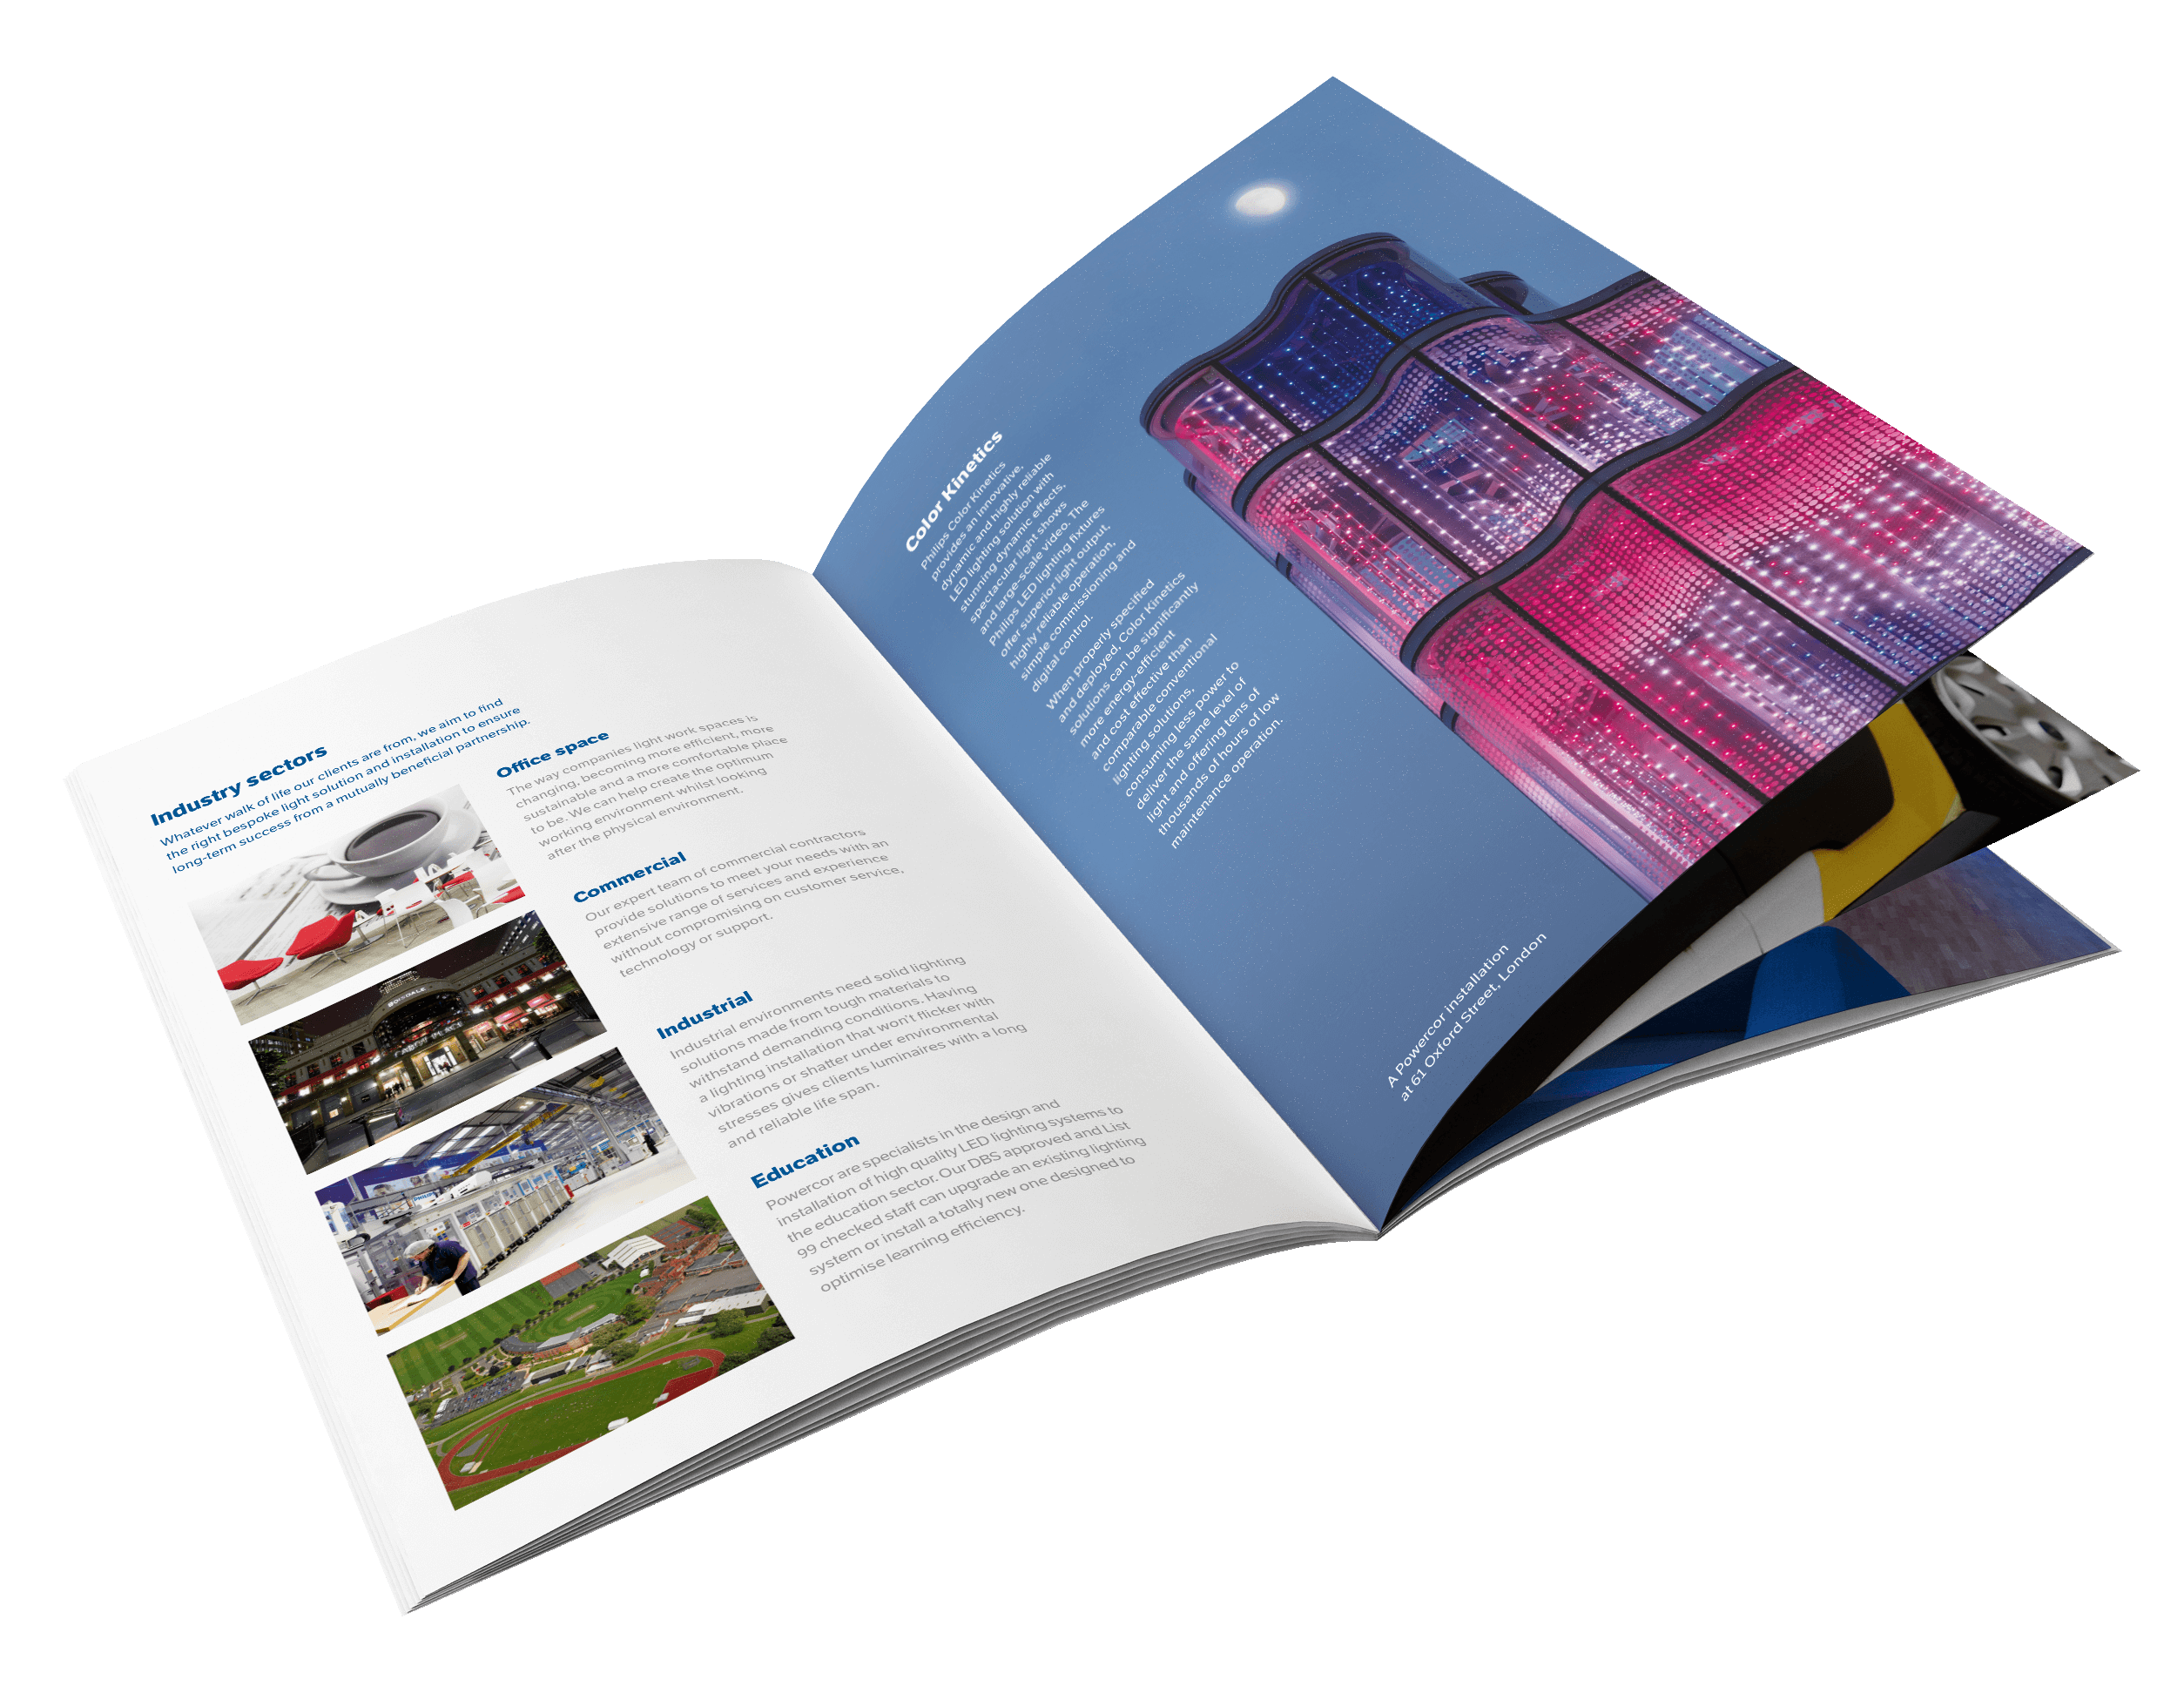 Image Result For Brochure Design With A Lot Of Text Brochure Design Inspiration Templates Brochure Design Inspiration Brochure Design